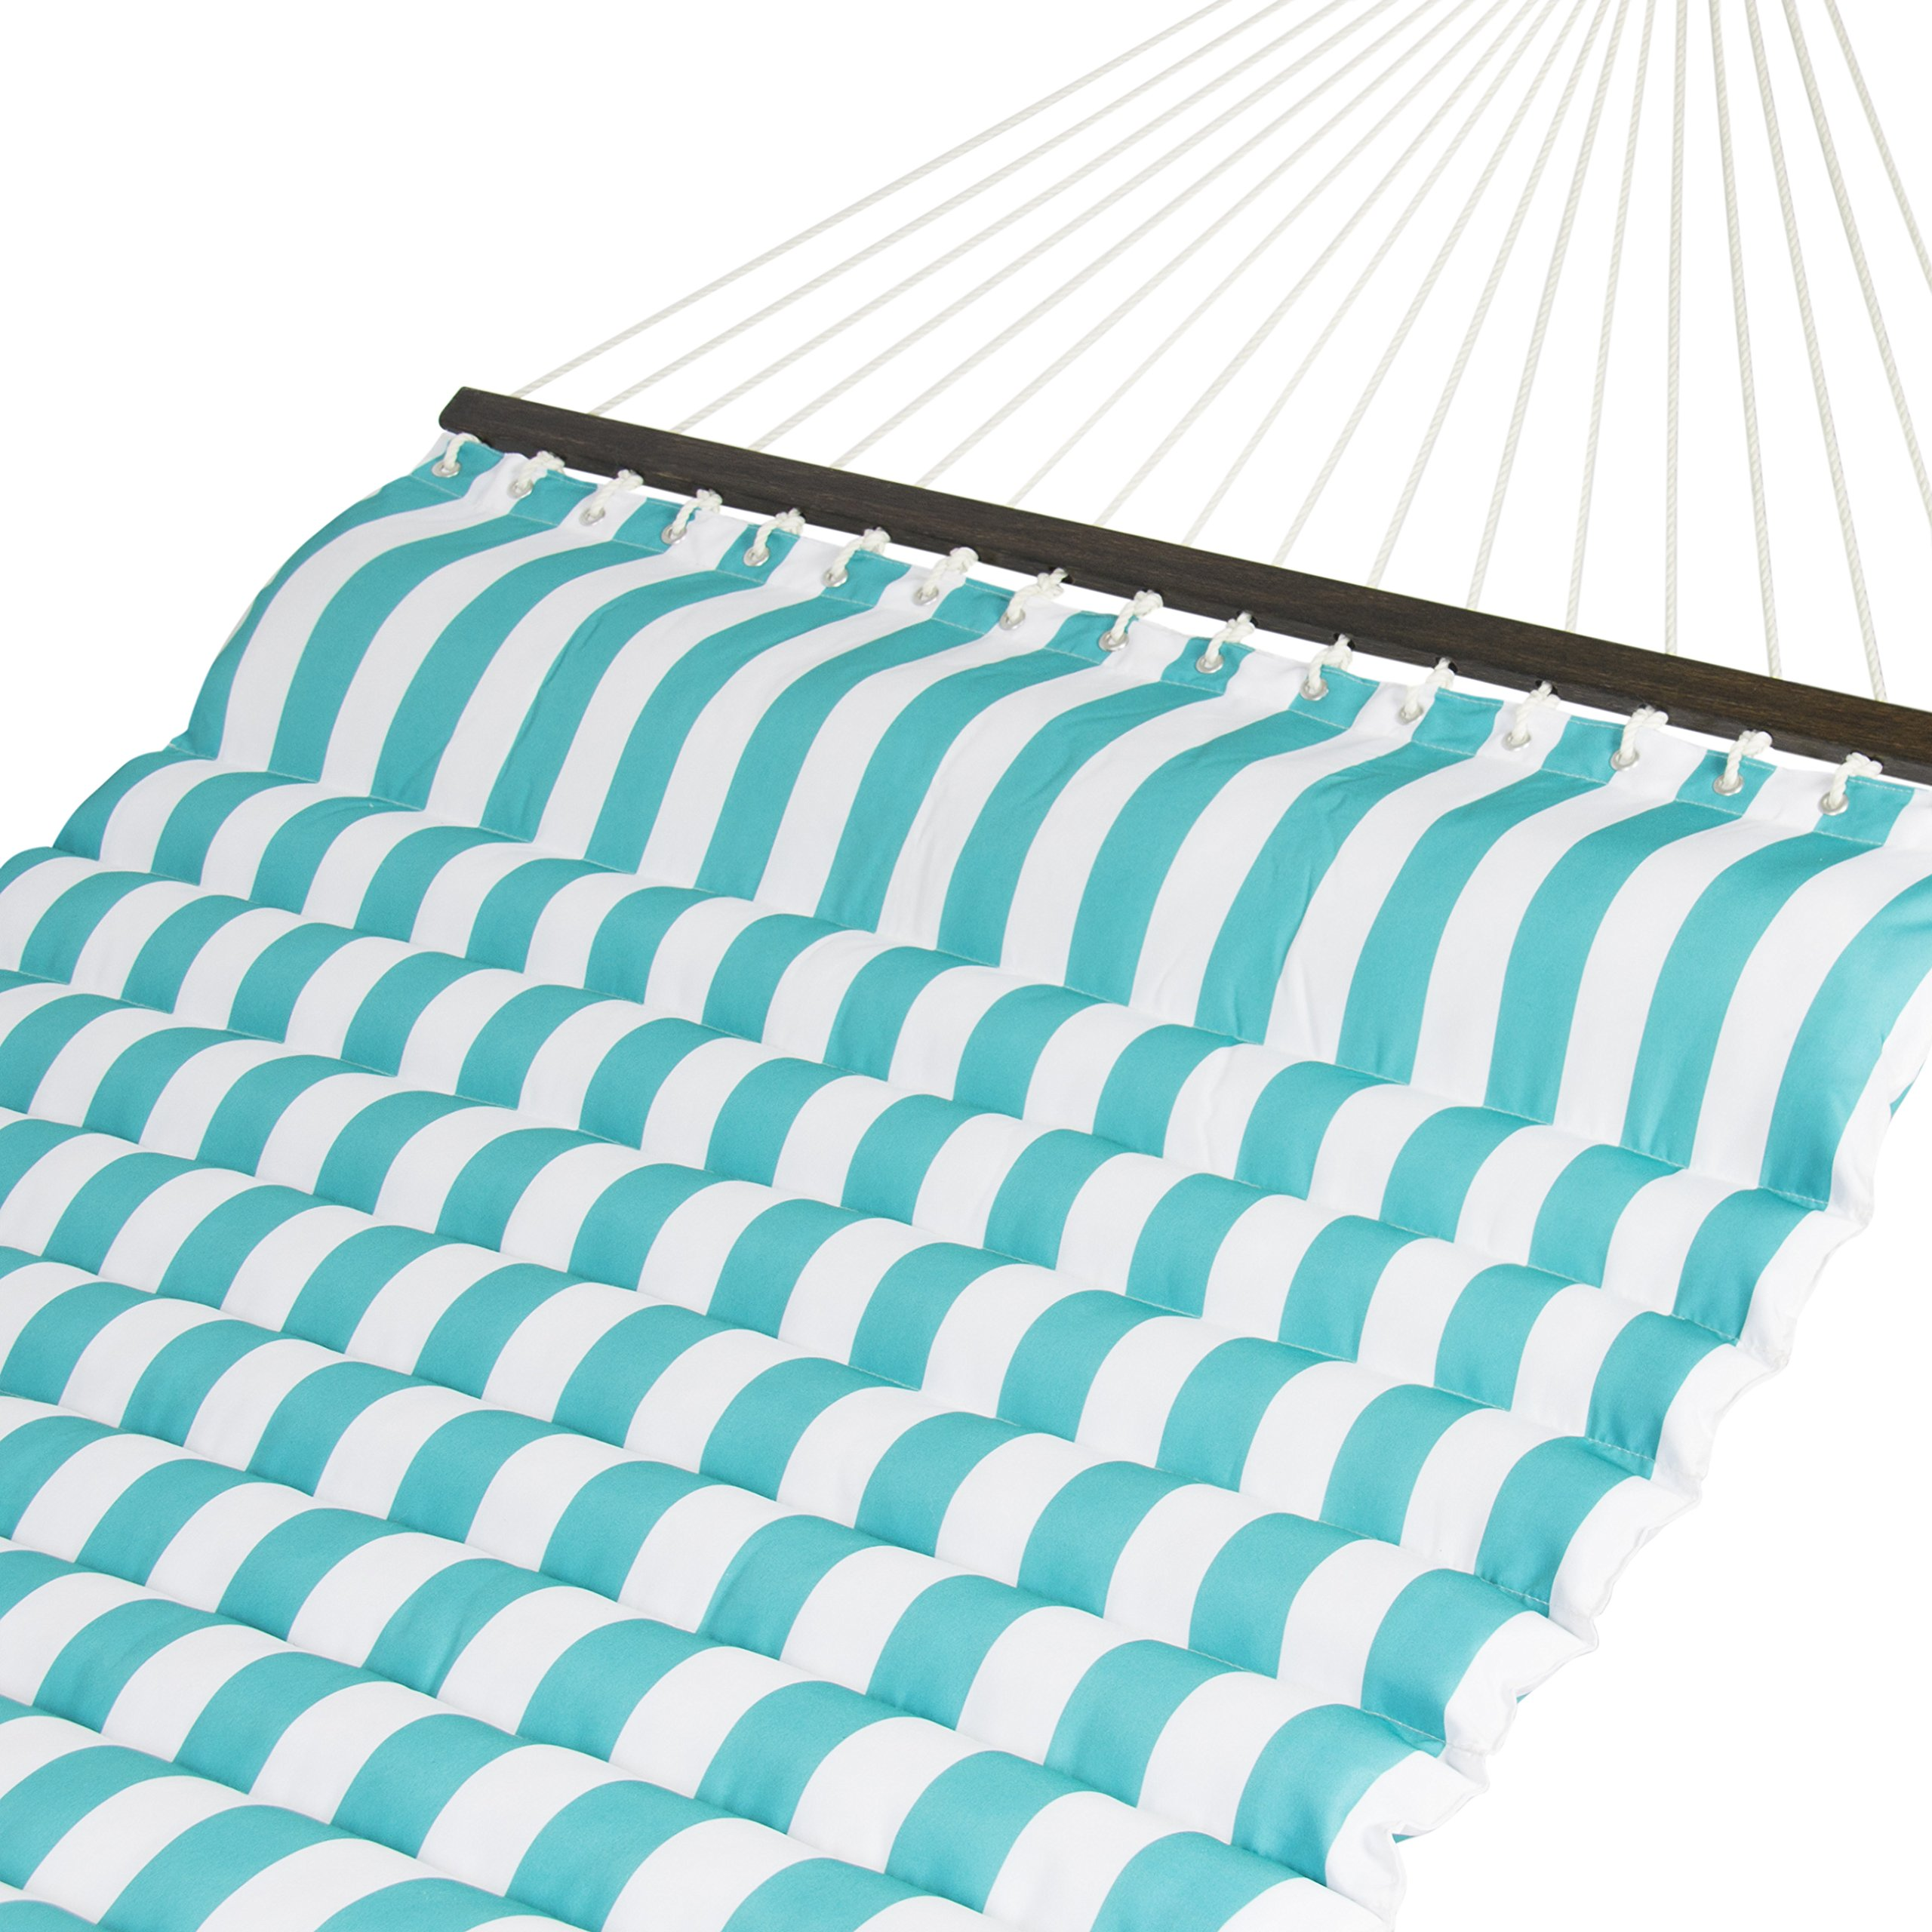 Best Choice Products Plush Quilted Double Hammock w/ Spreader Bars - Teal/White